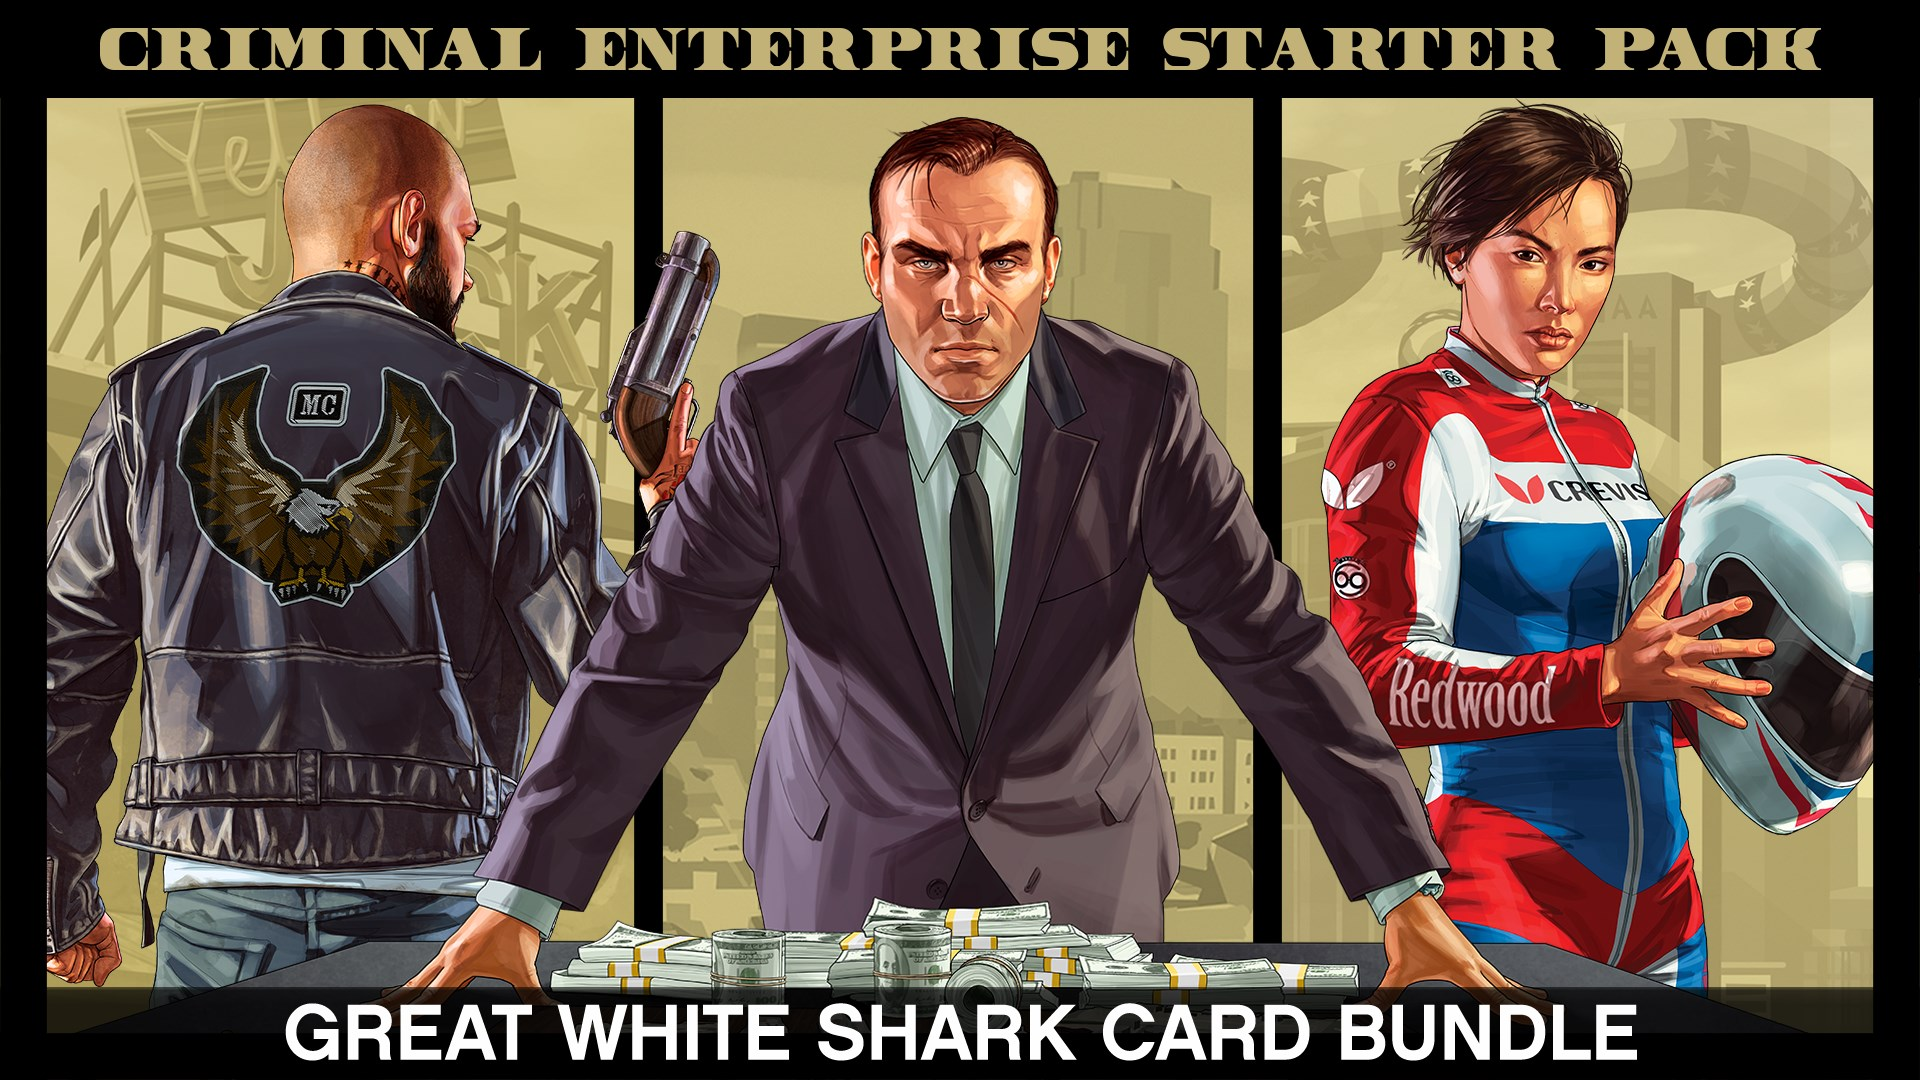 Criminal Enterprise Starter Pack and Great White Shark Card Bundle